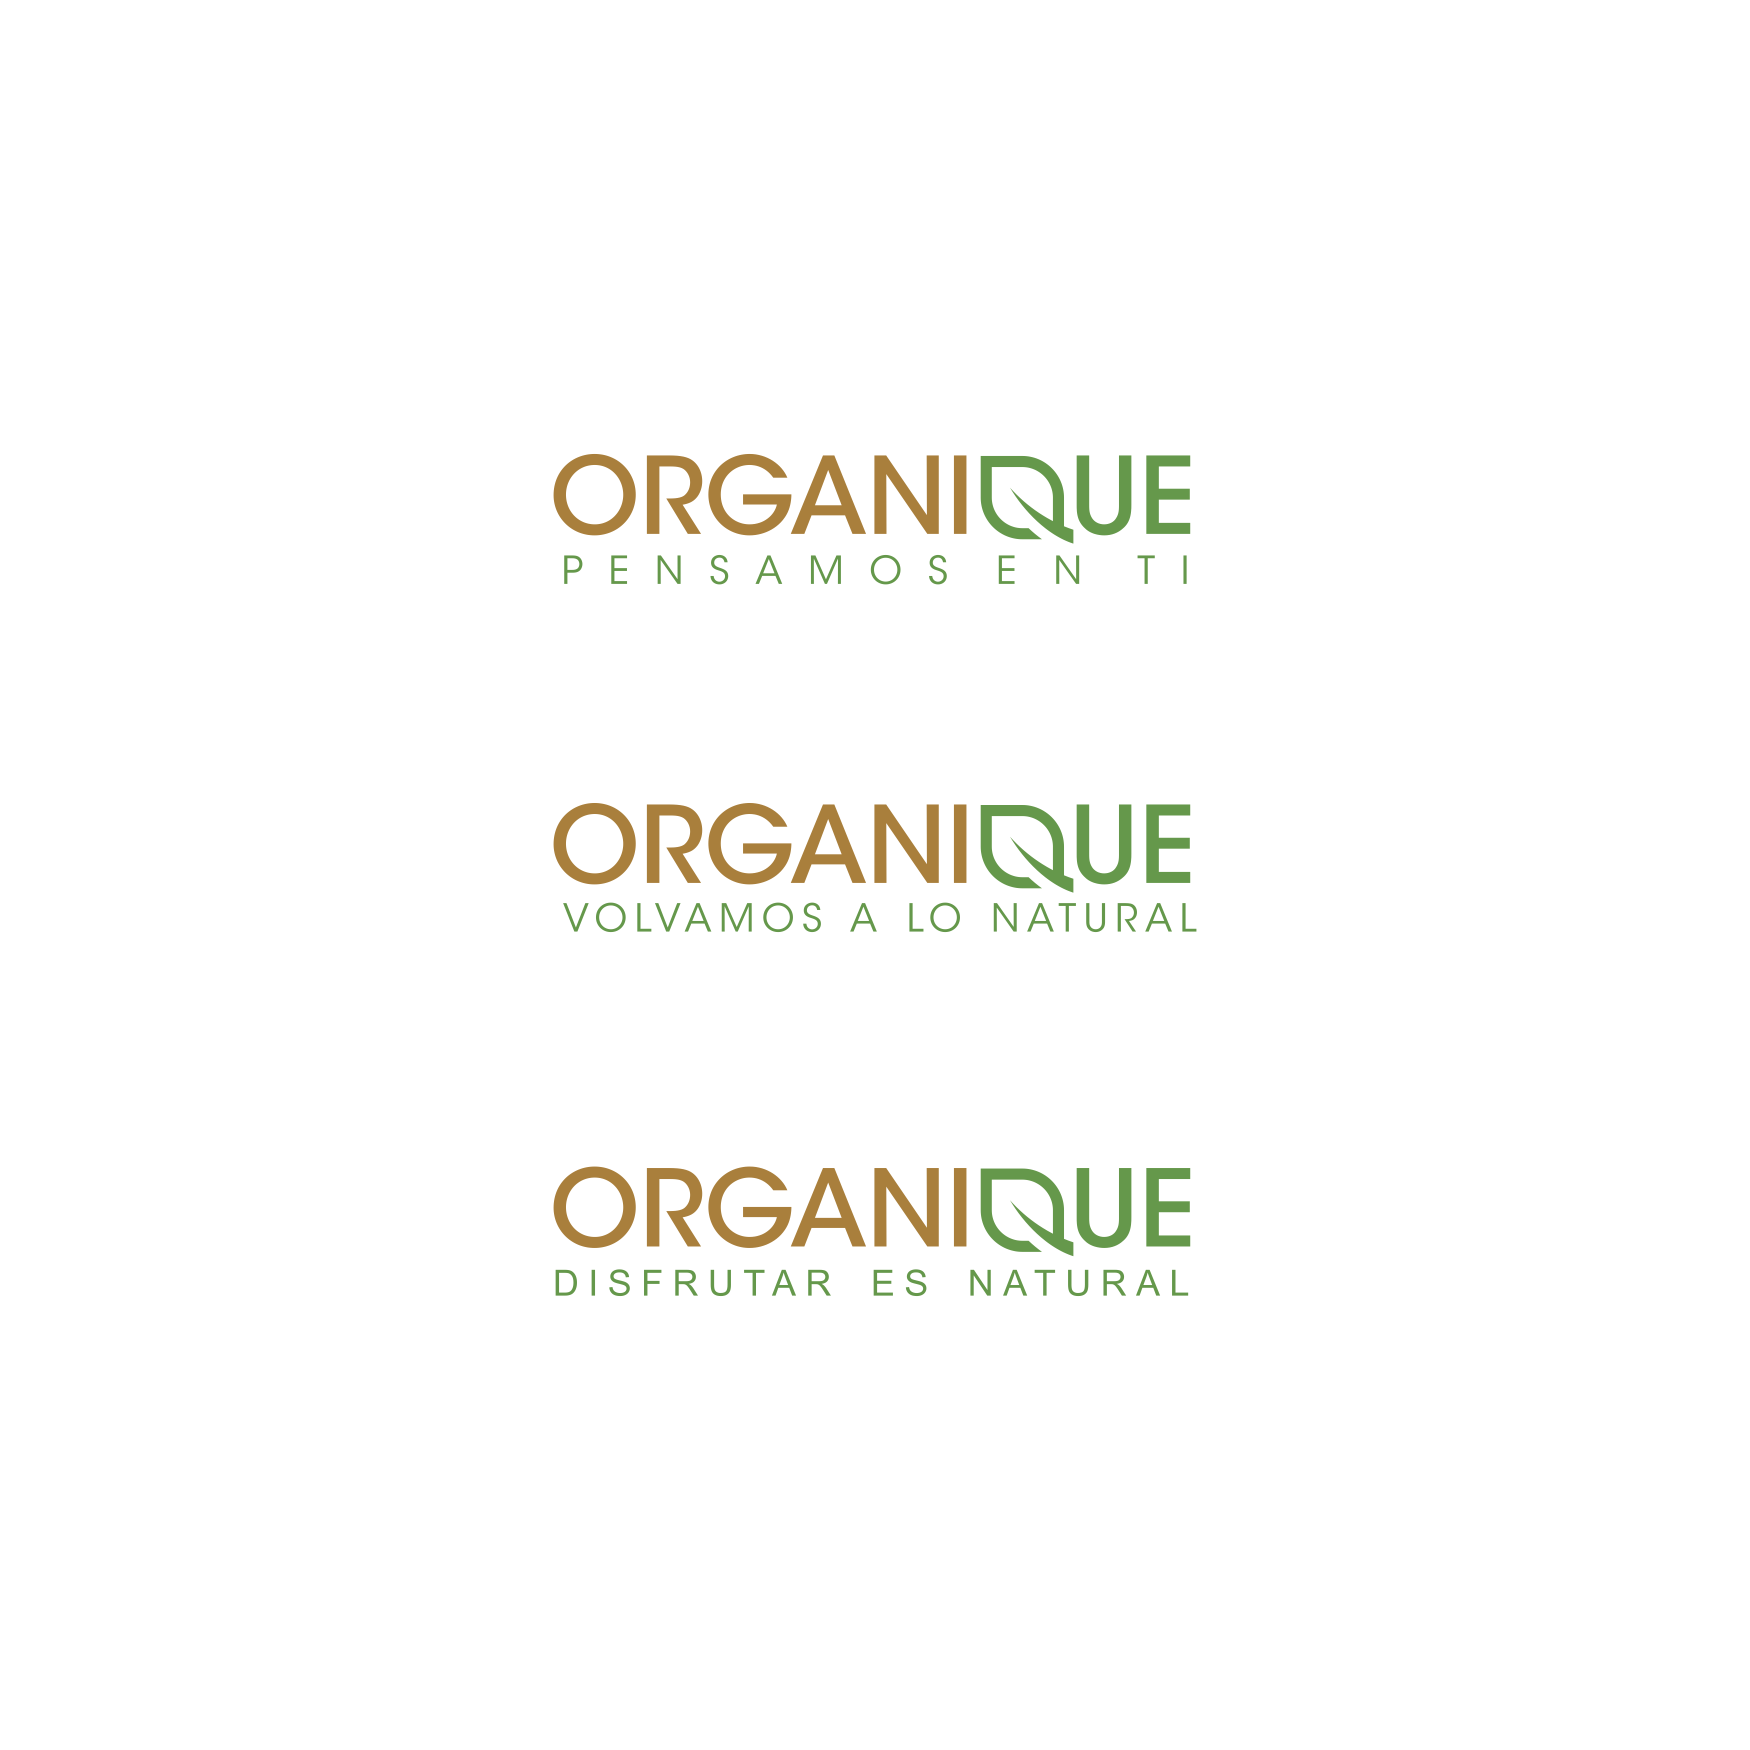 Organique needs a powerful and elegant new logo